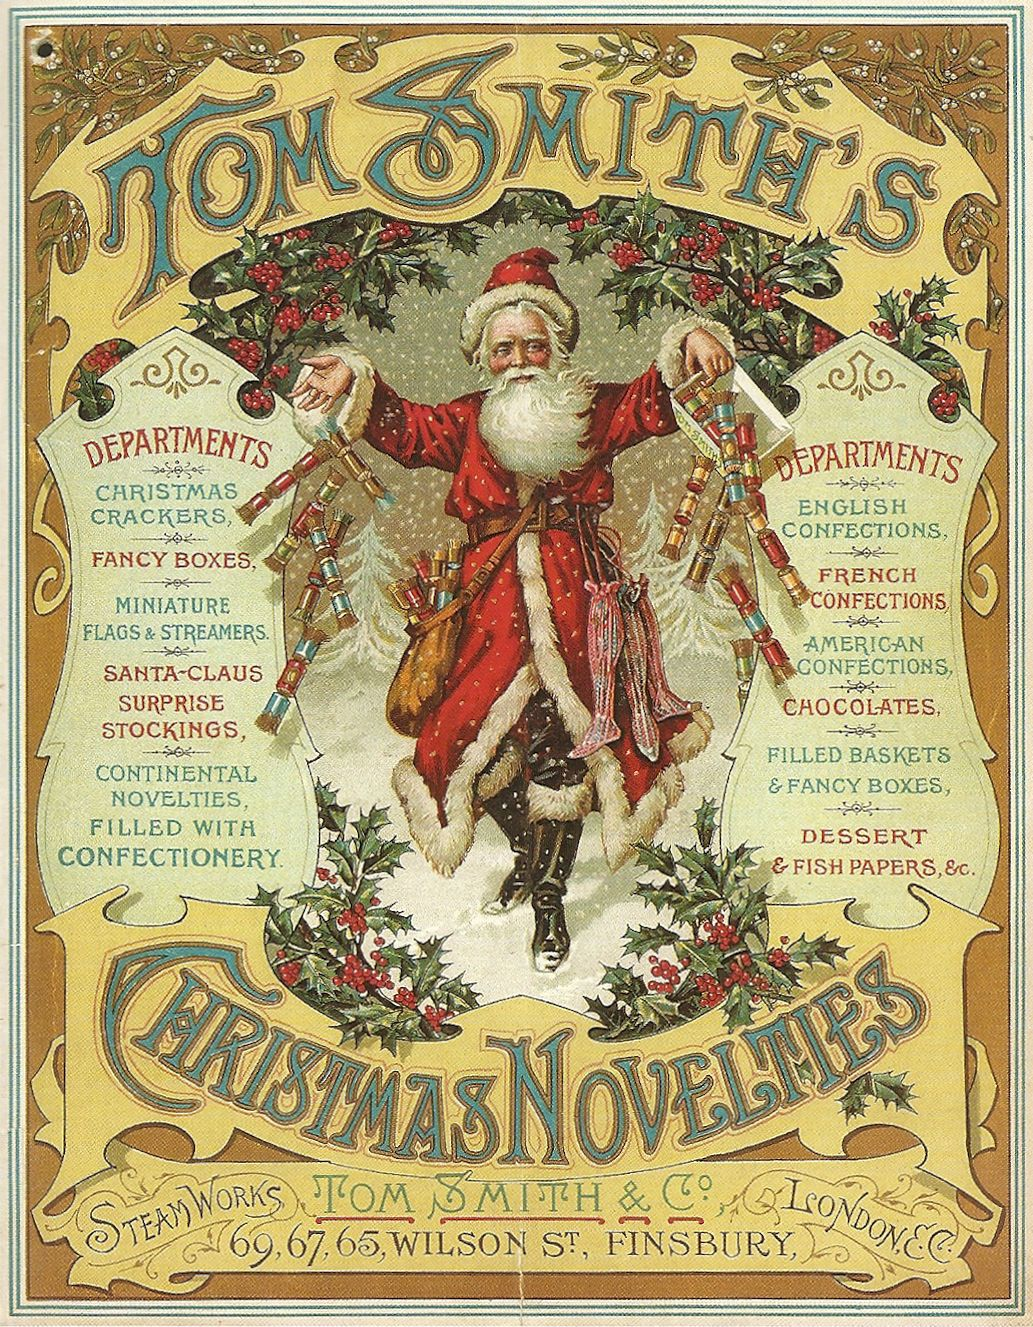 The Company S Founder Tom Smith Is Credited With The Invention Of The Christmas Cracker In The Early 1 Christmas Crackers Christmas Ephemera Christmas Postcard